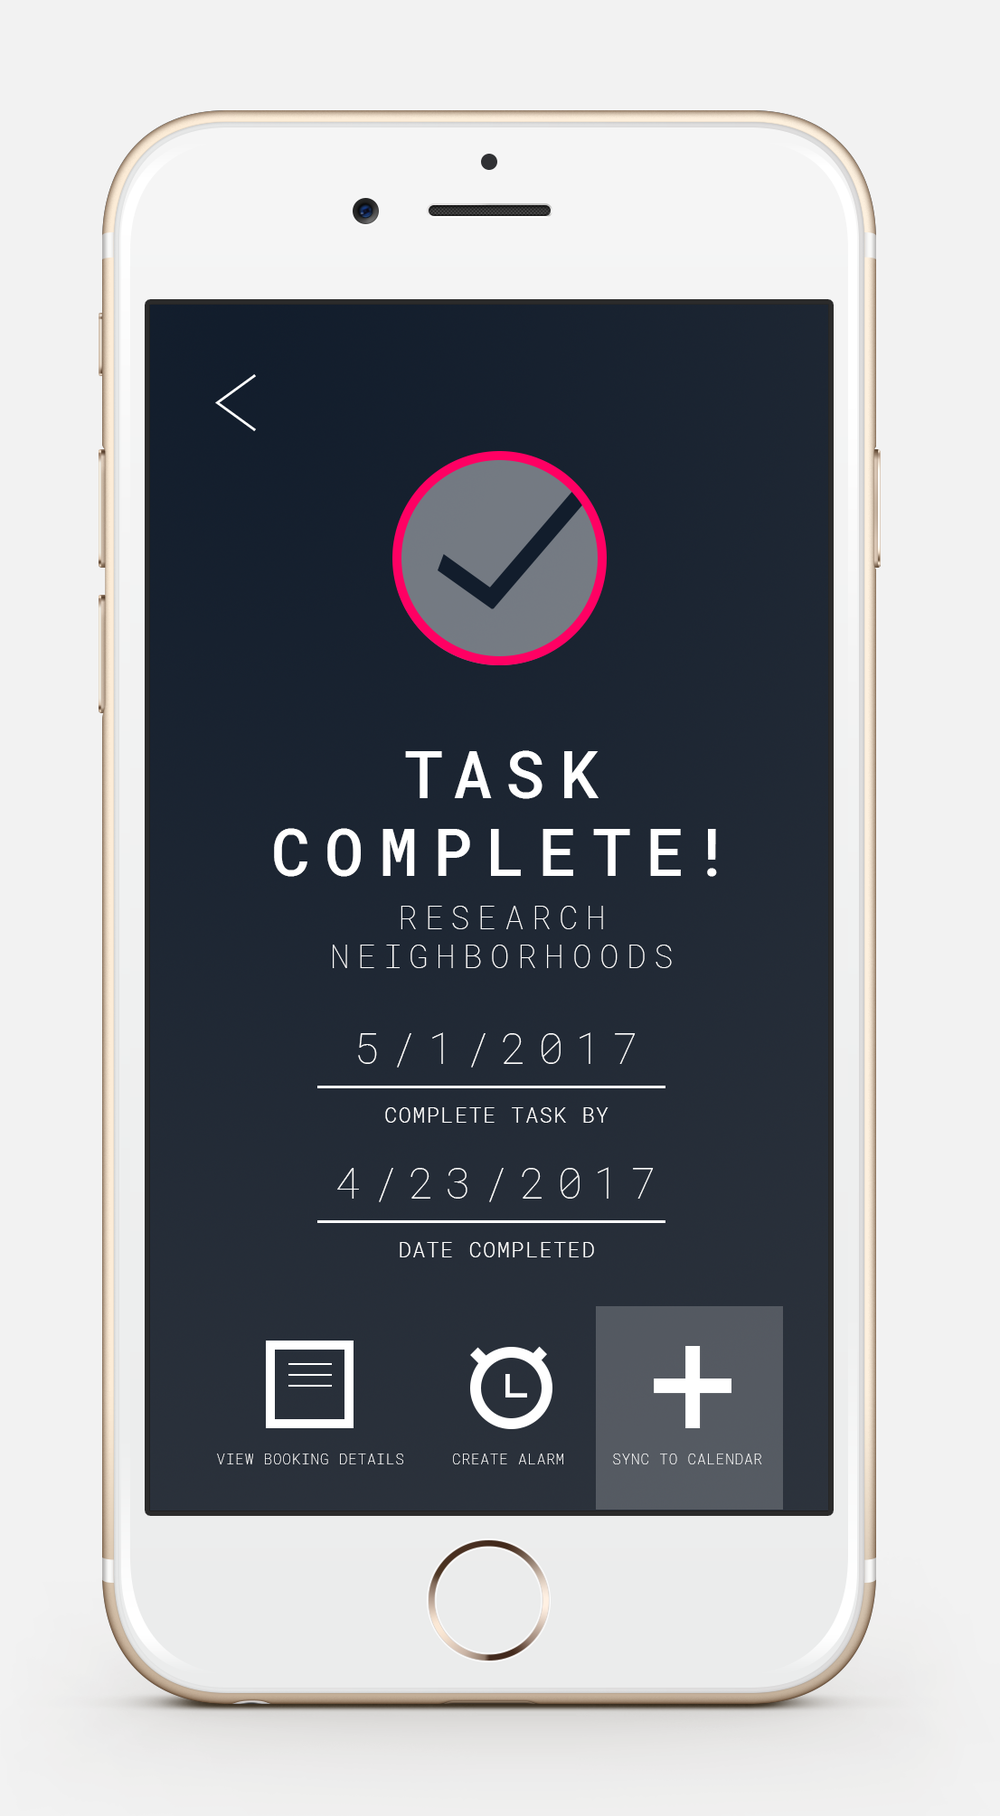 agile-task-complete-1.png